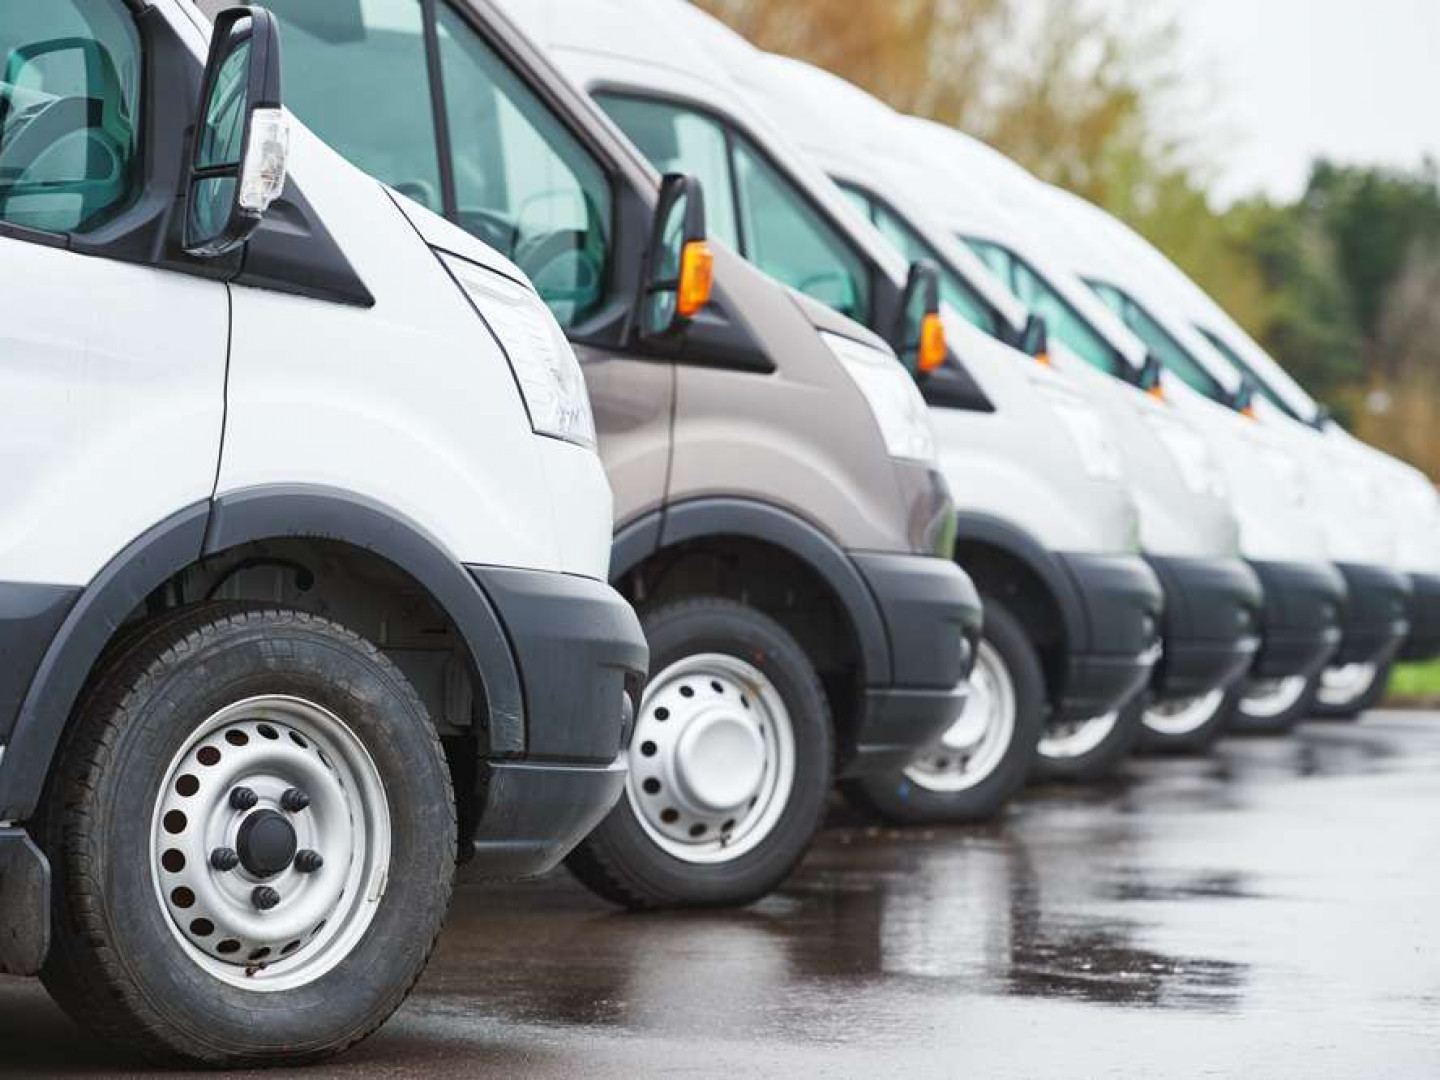 Our Experts Can Handle Fleet Vehicles Too